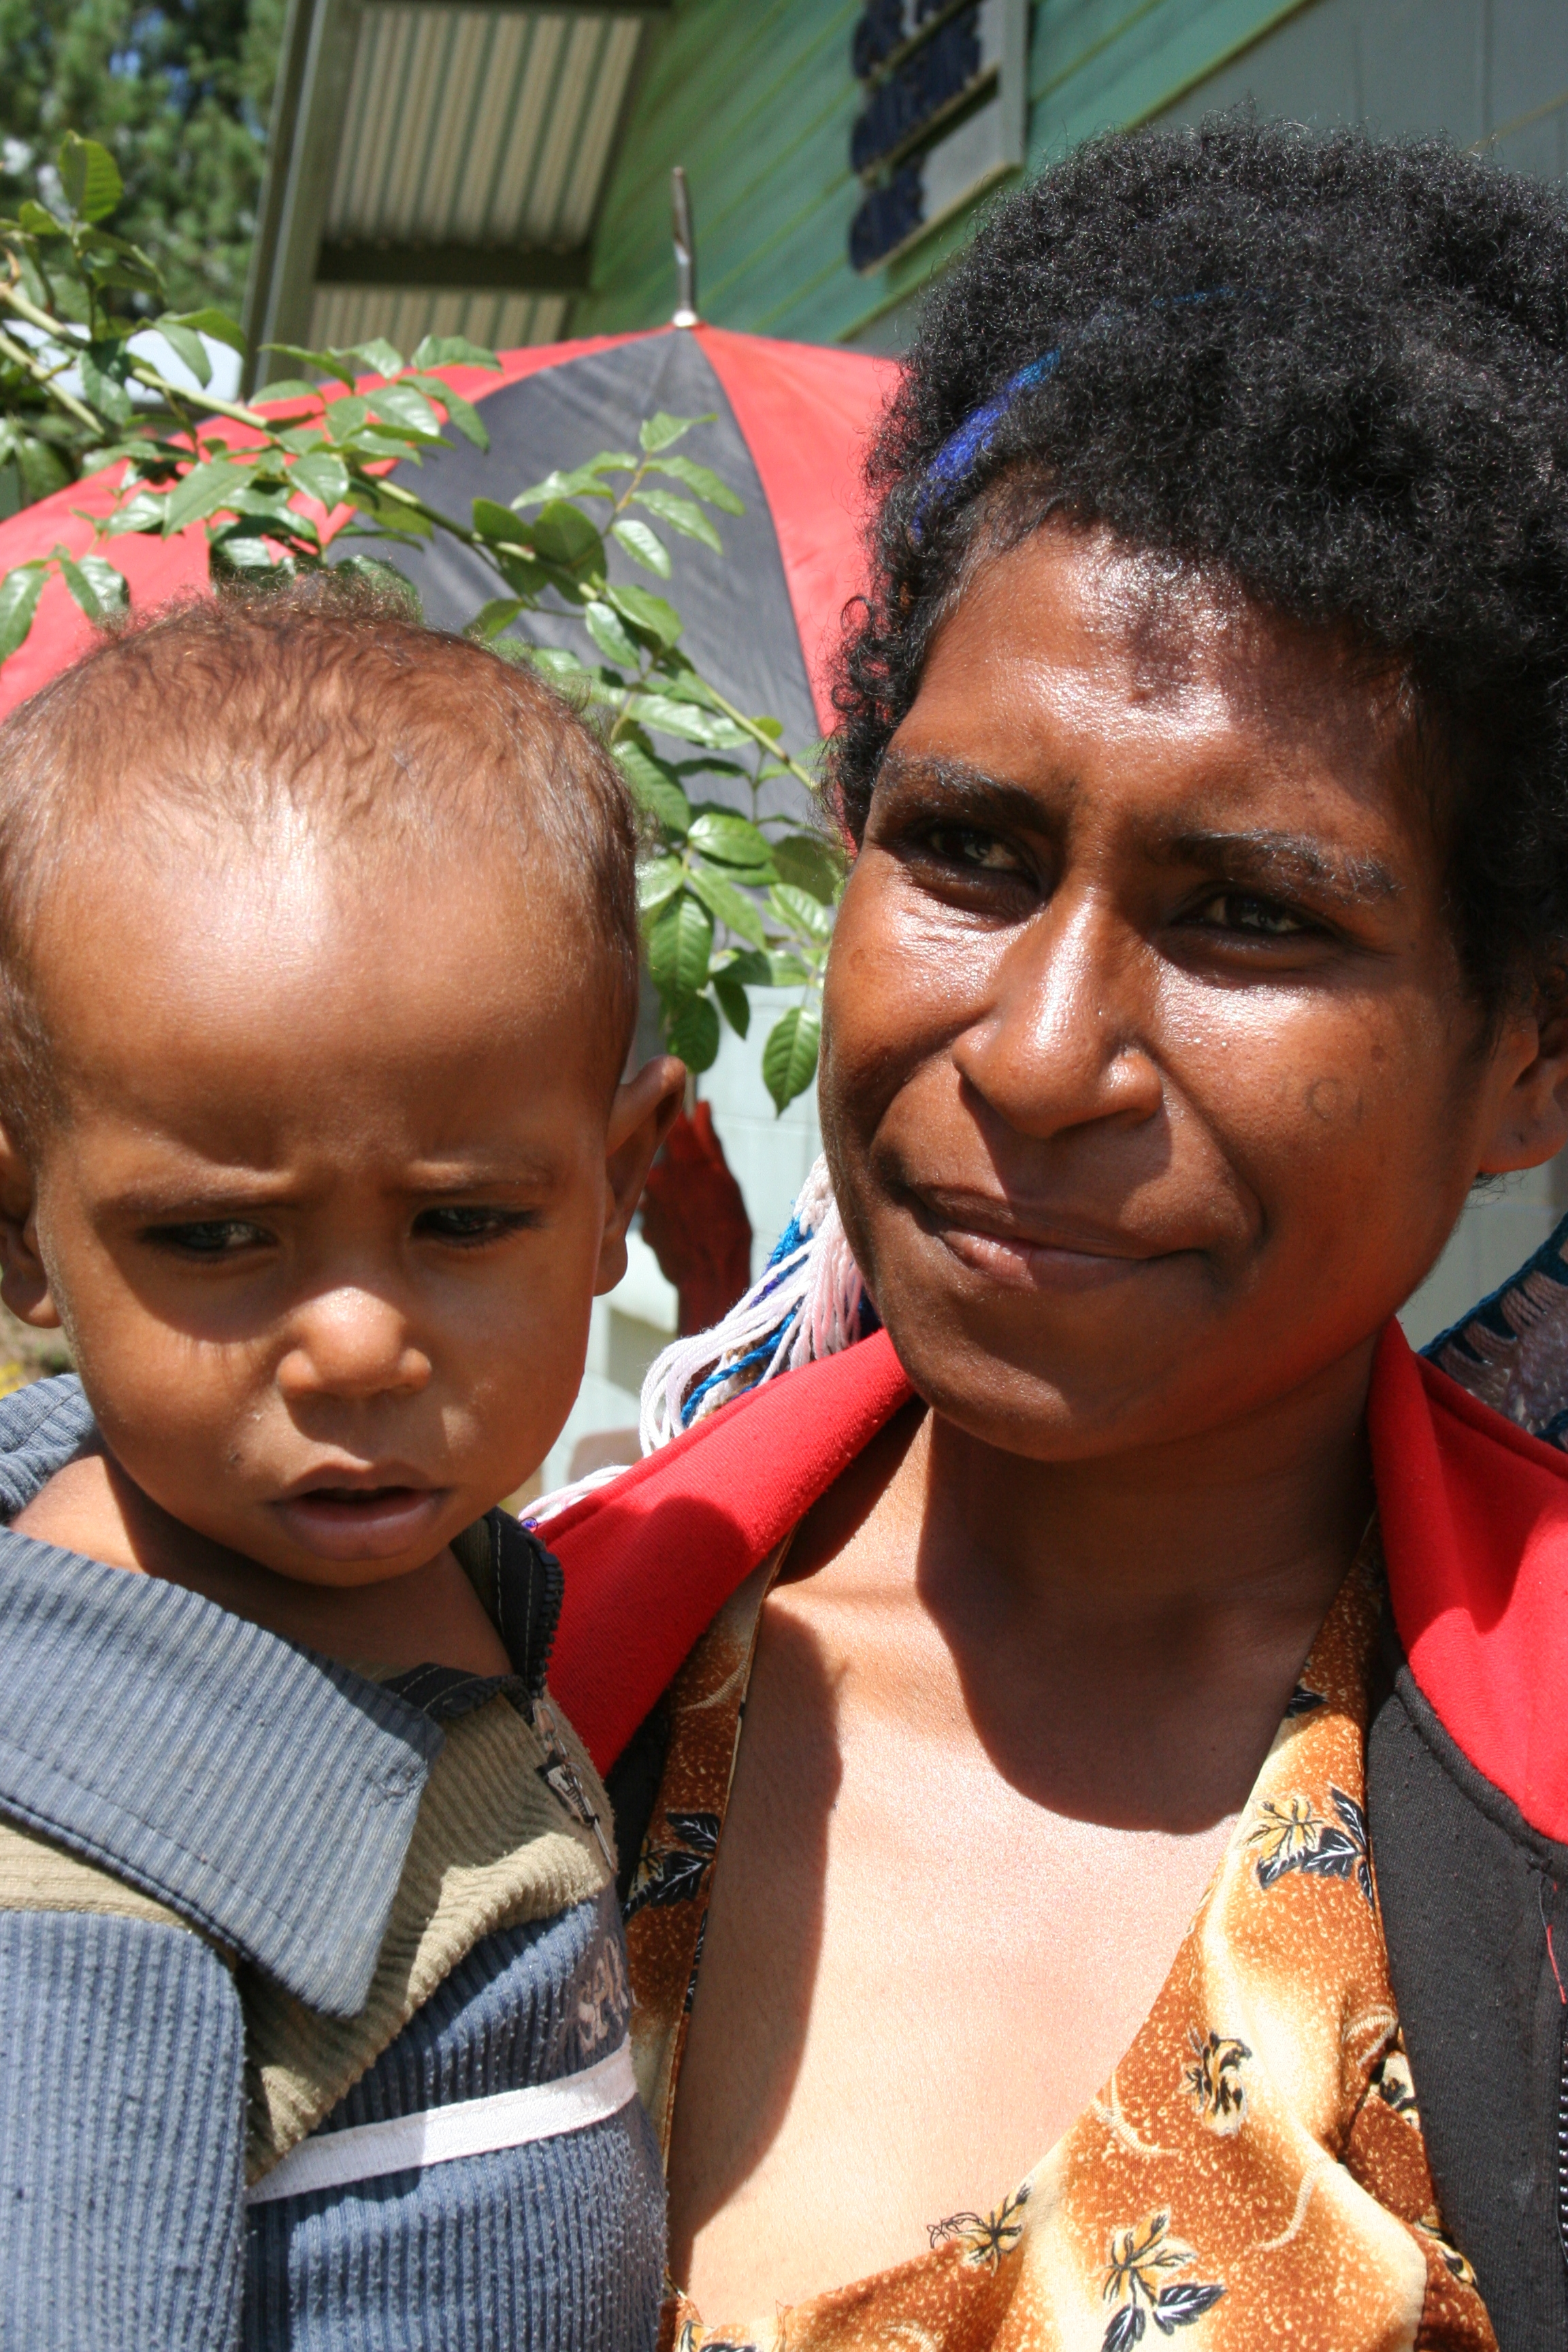 Mother and child <font color=red>(mum HIV+ but no permission granted to reveal status - SO DO NOT)</font>